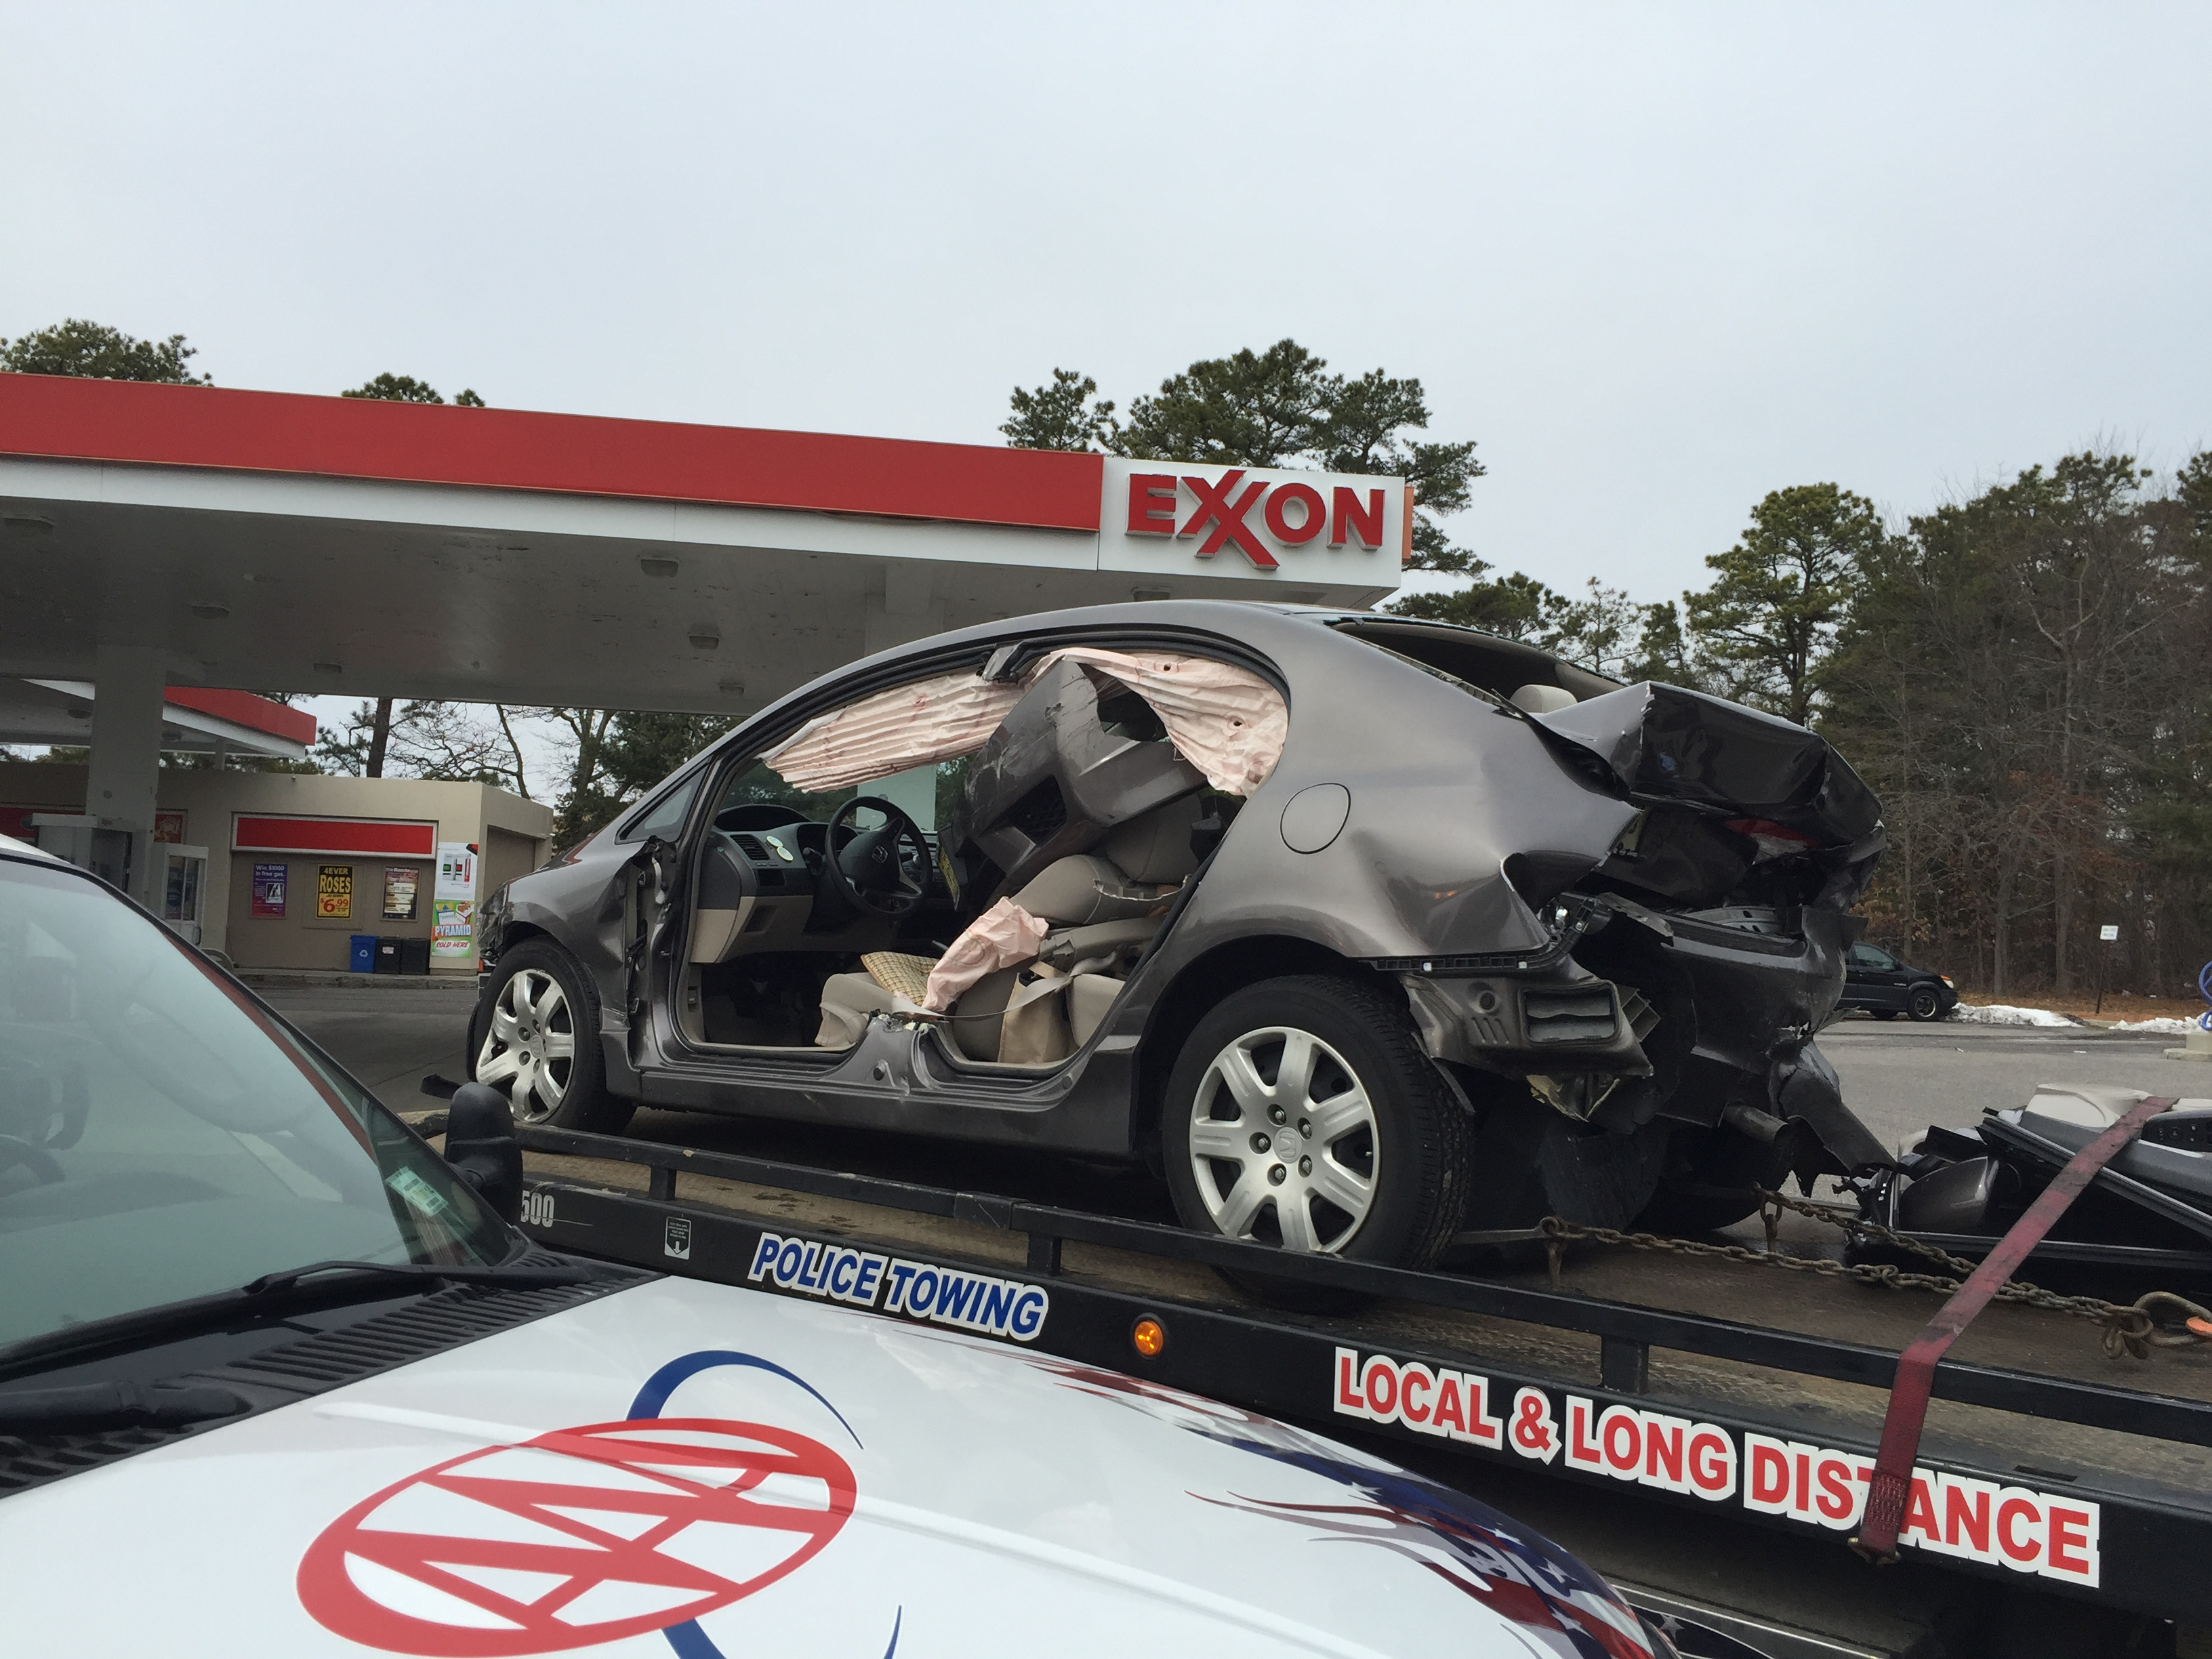 Honda Toms River Manchester Police News 23 51 Manchester Township Police